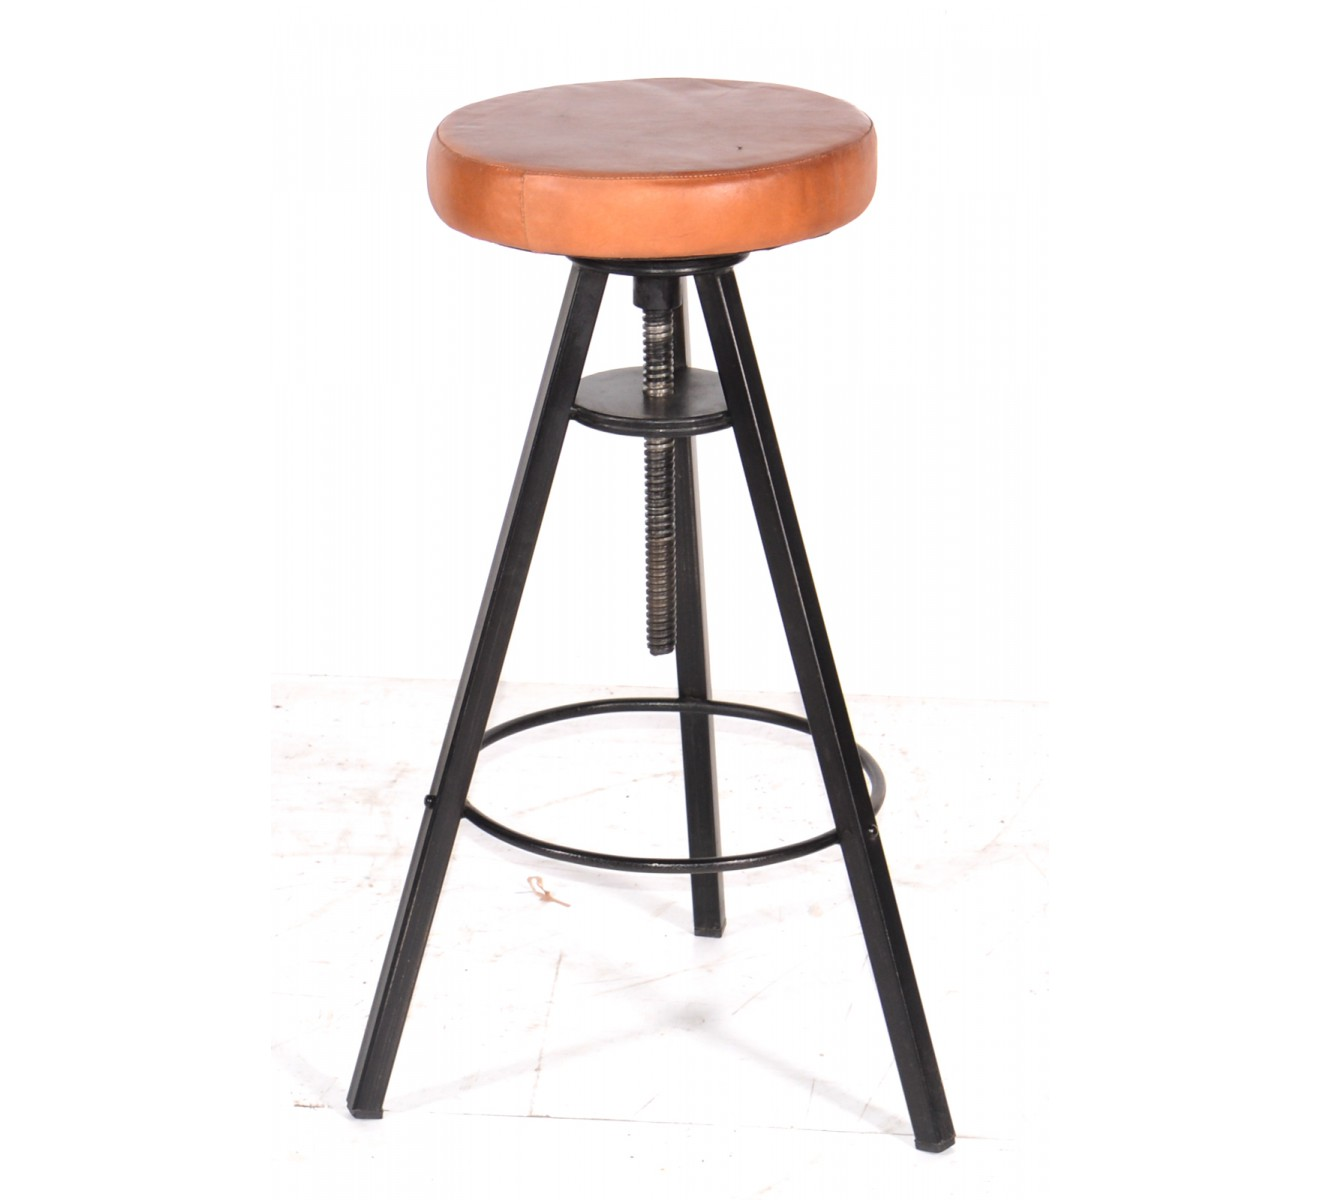 tabouret de bar industriel 65 cm mobilier design d coration d 39 int rieur. Black Bedroom Furniture Sets. Home Design Ideas